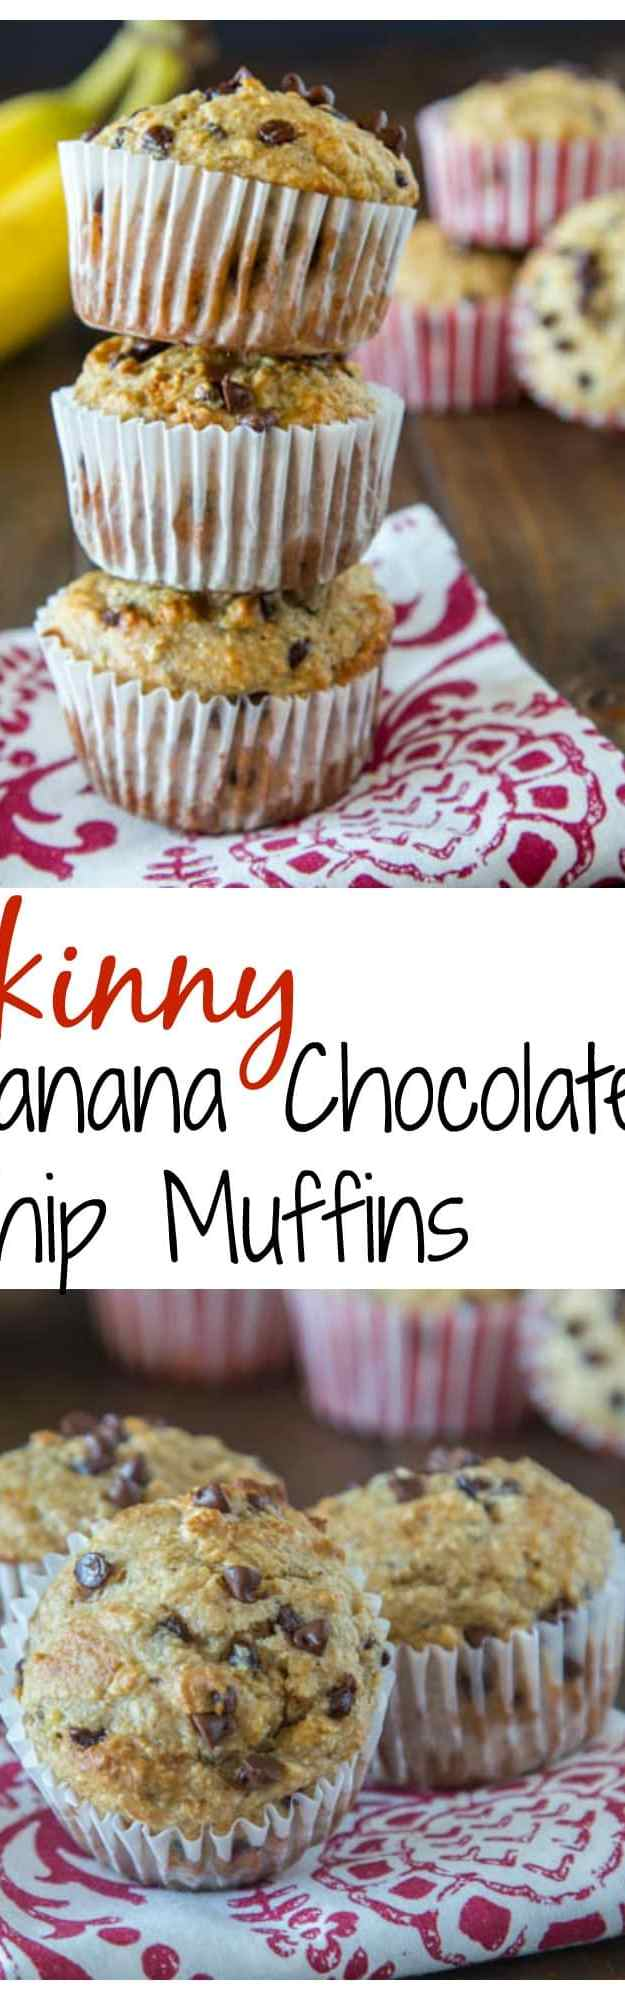 close up of skinny banana chocolate chip muffins on a napkin